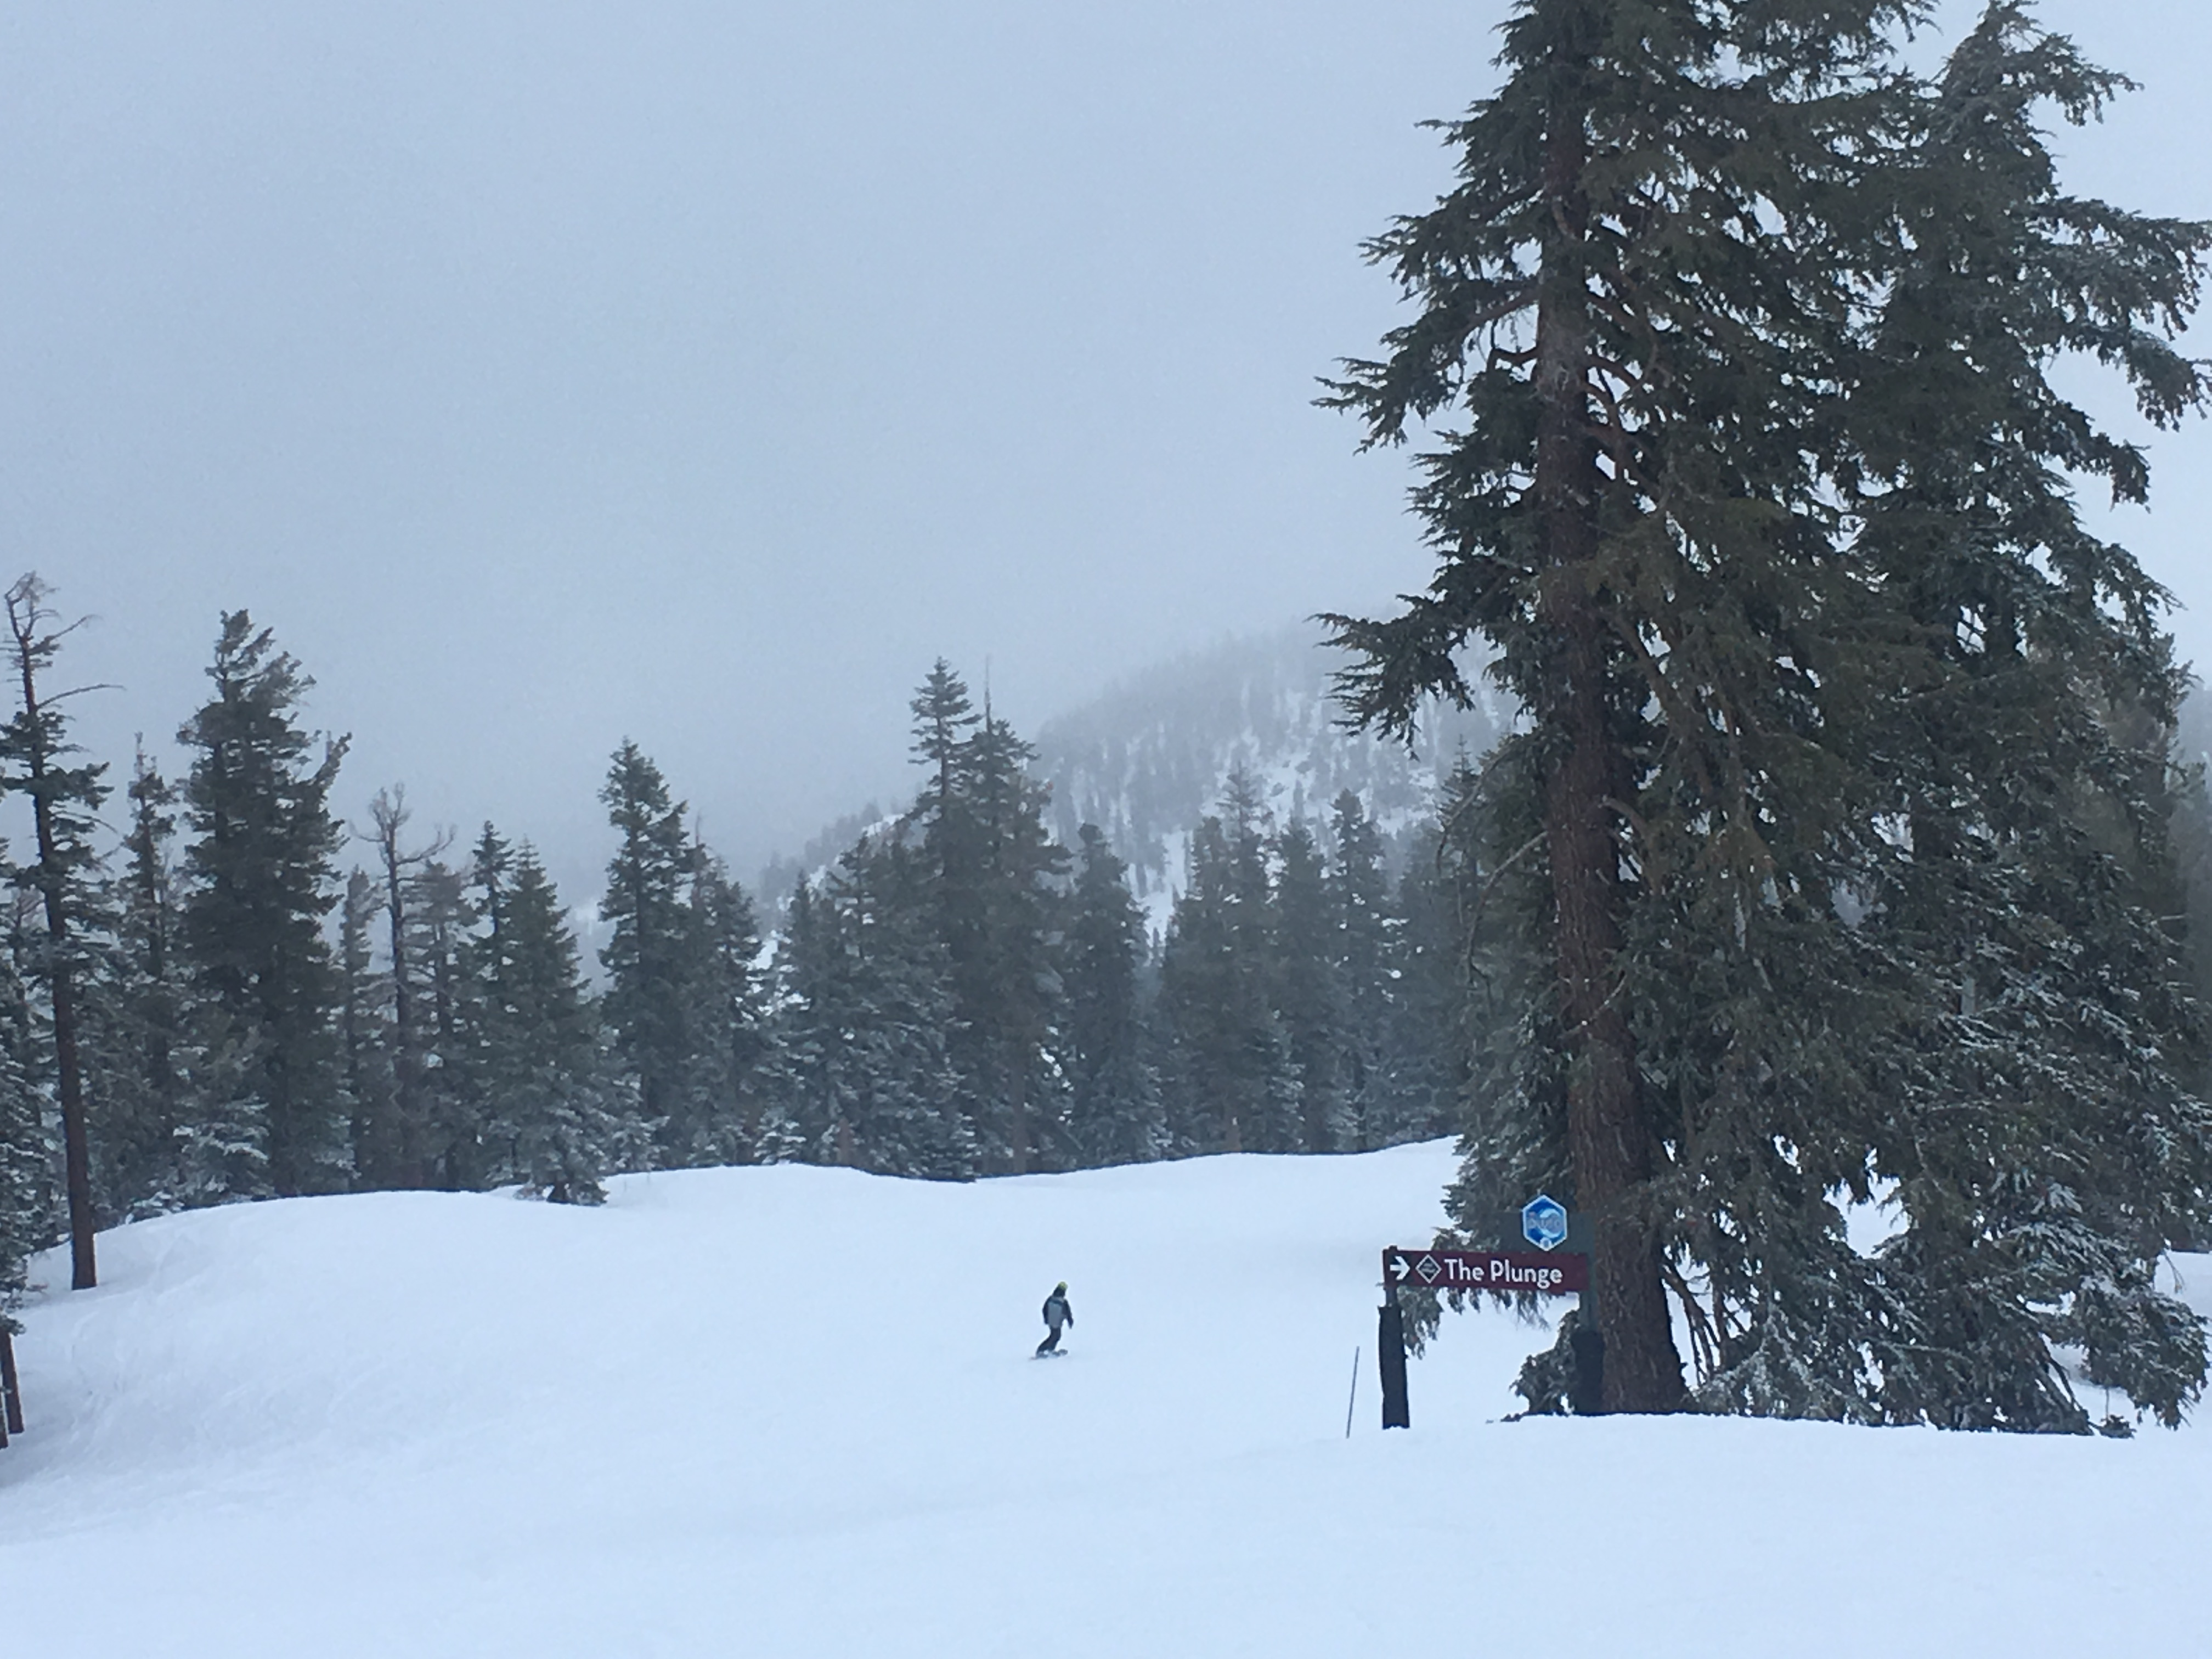 Northstar Mountain trails